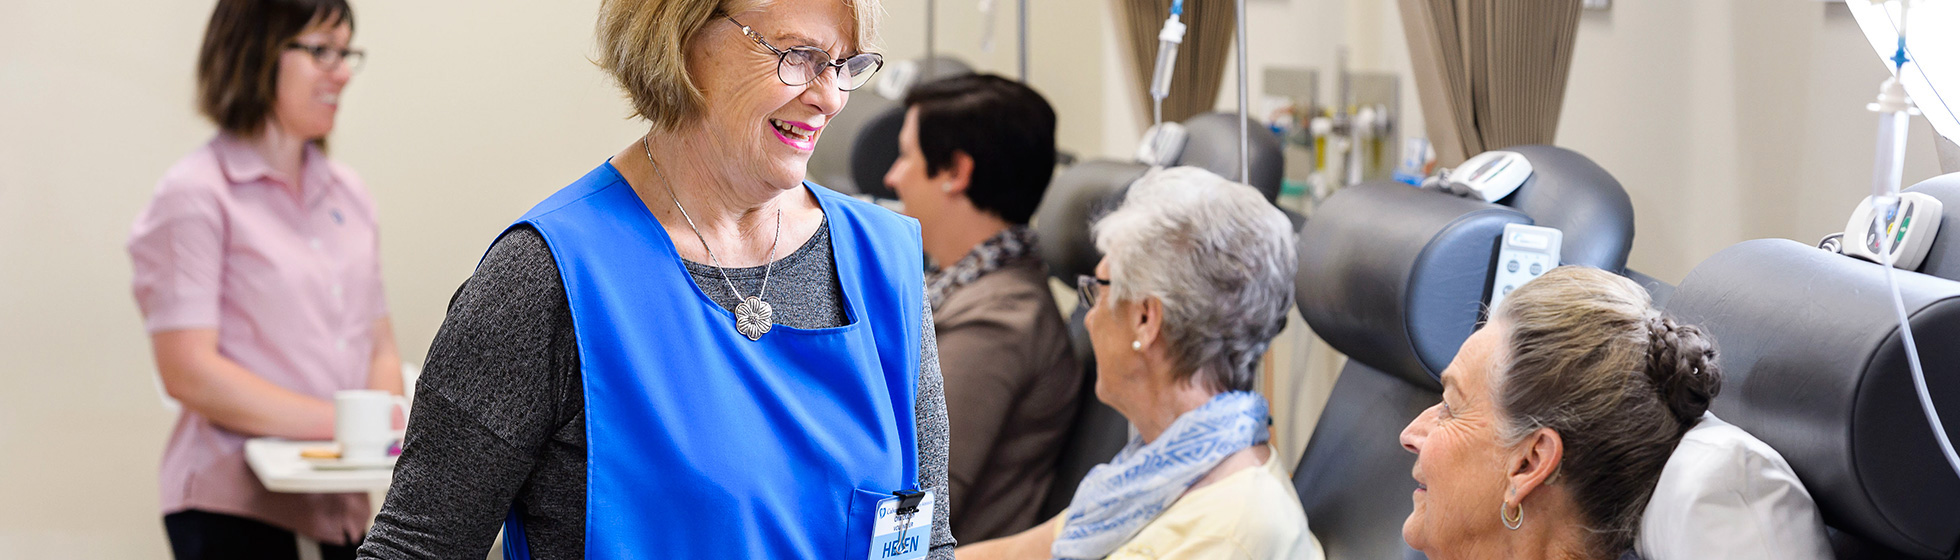 Volunteer caring for cancer patient